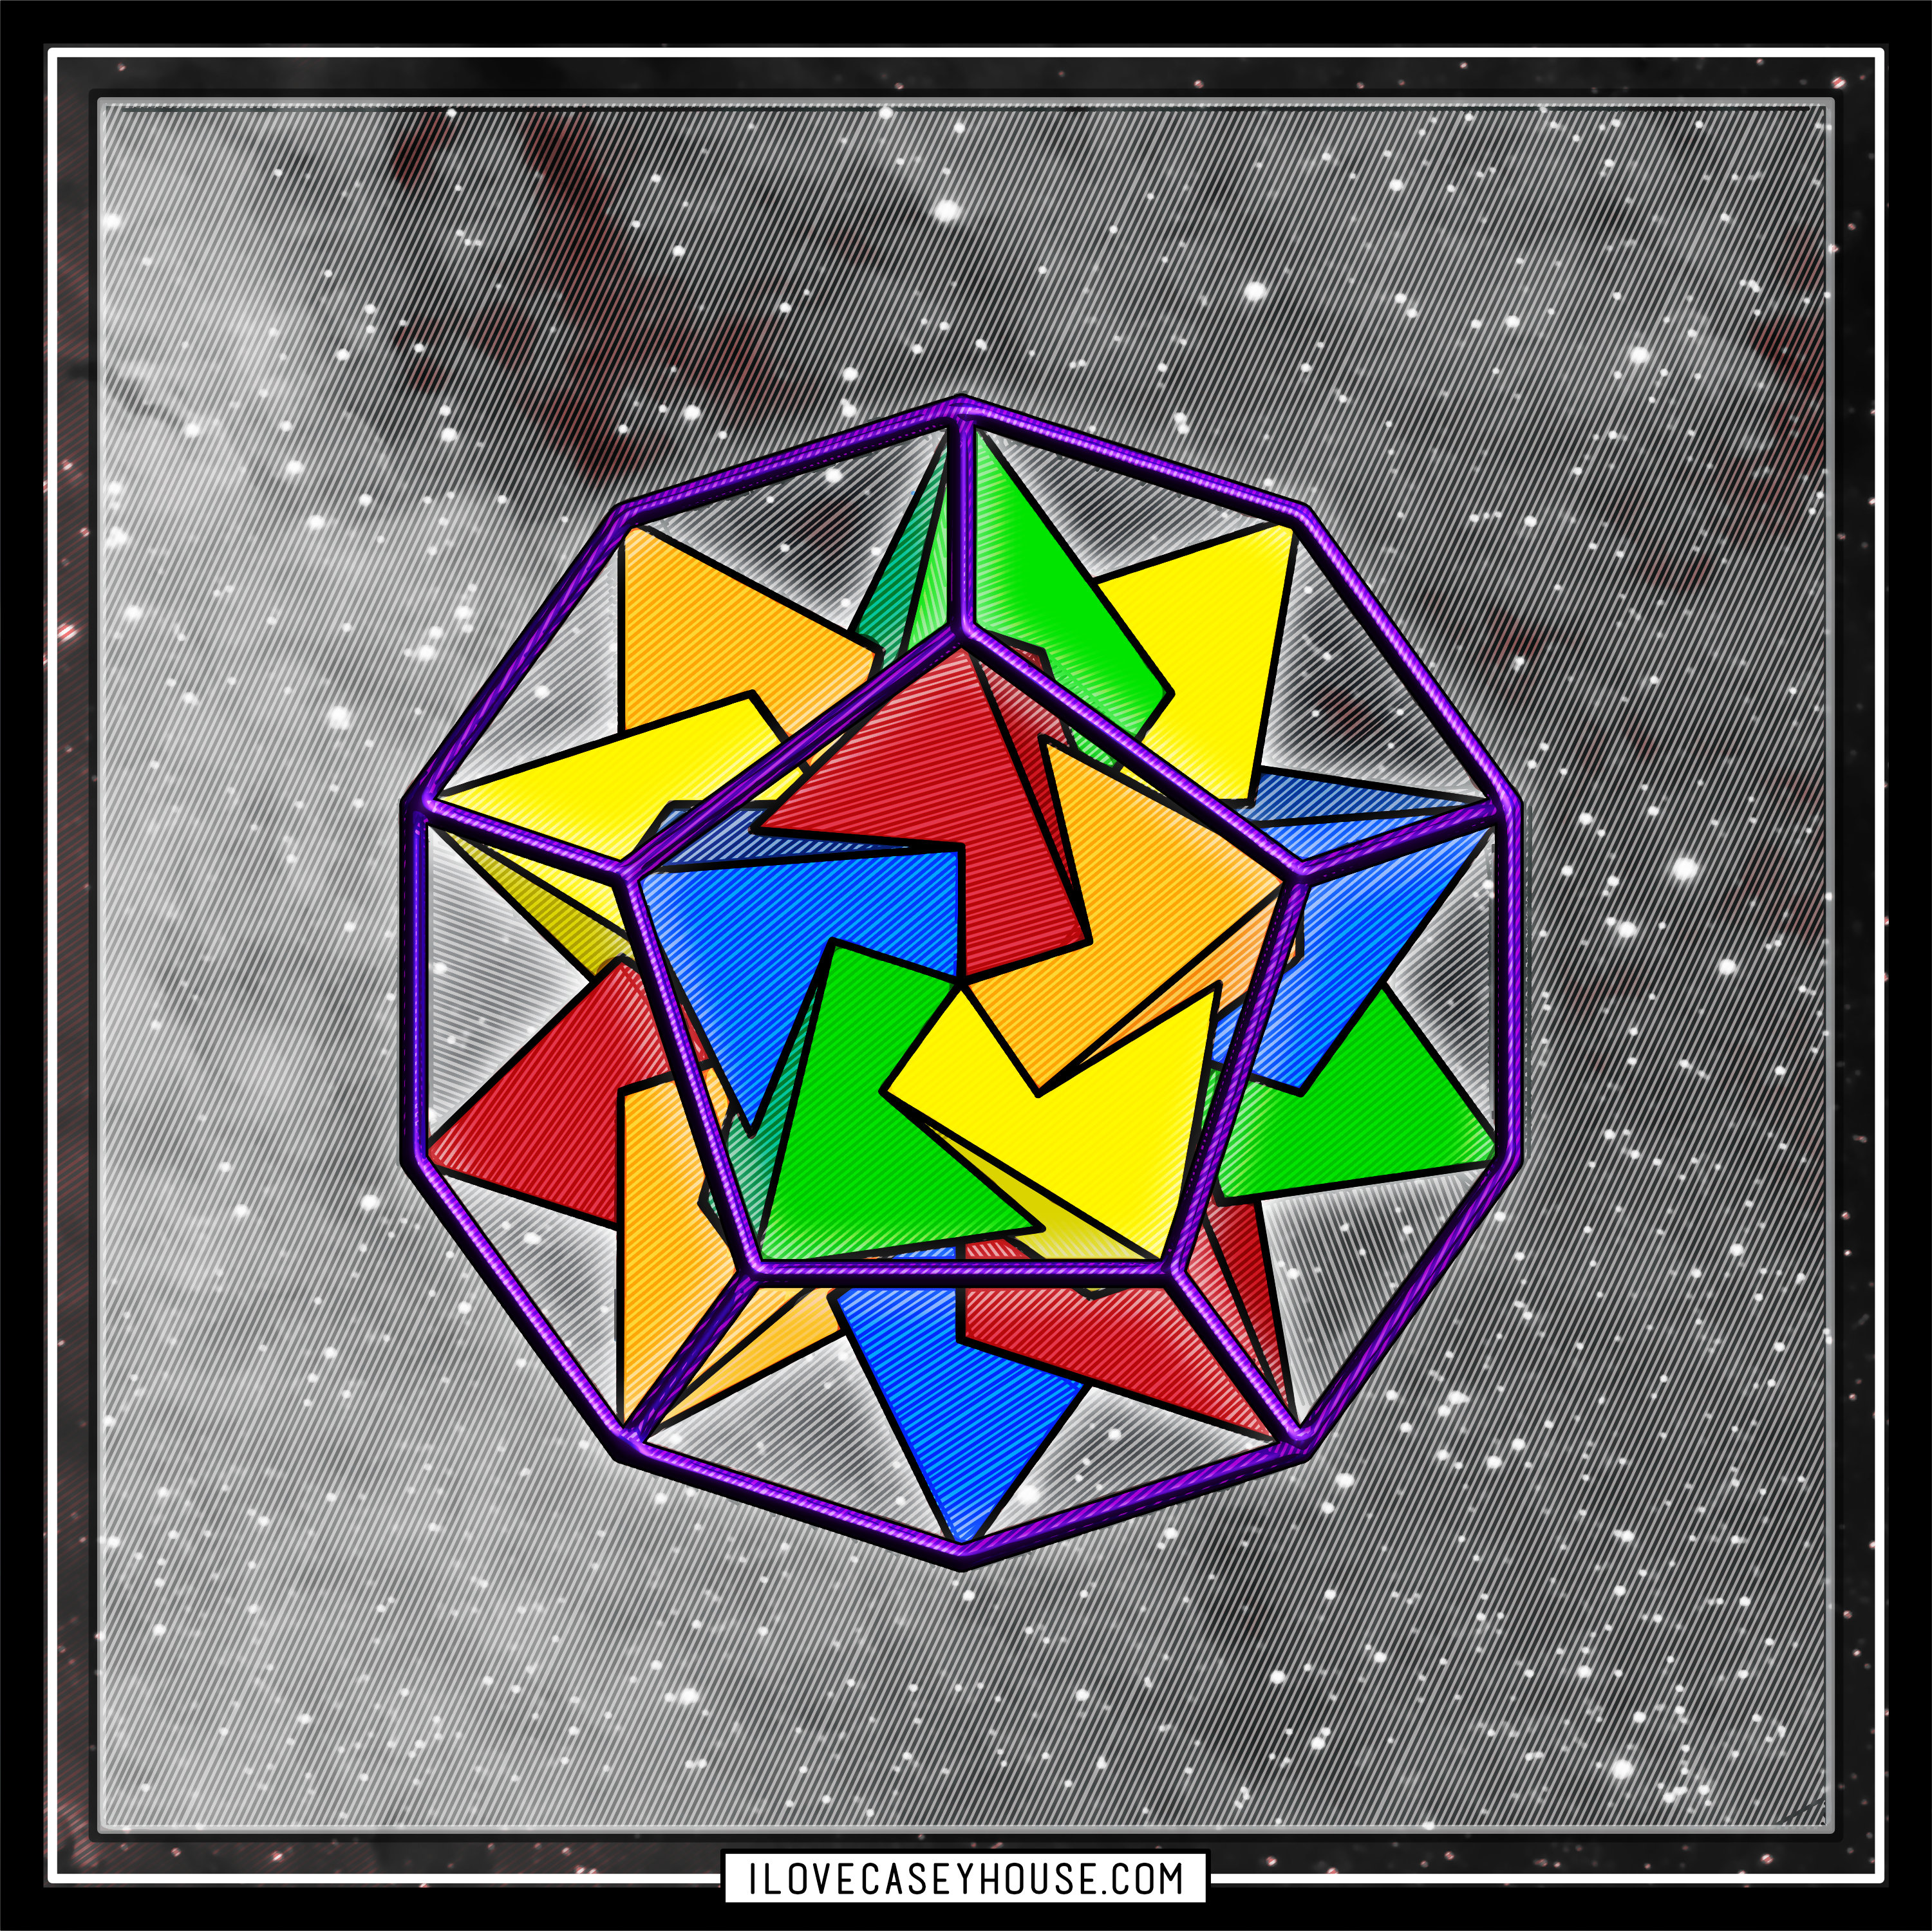 Tetrahedrons Defining Dodecahedron